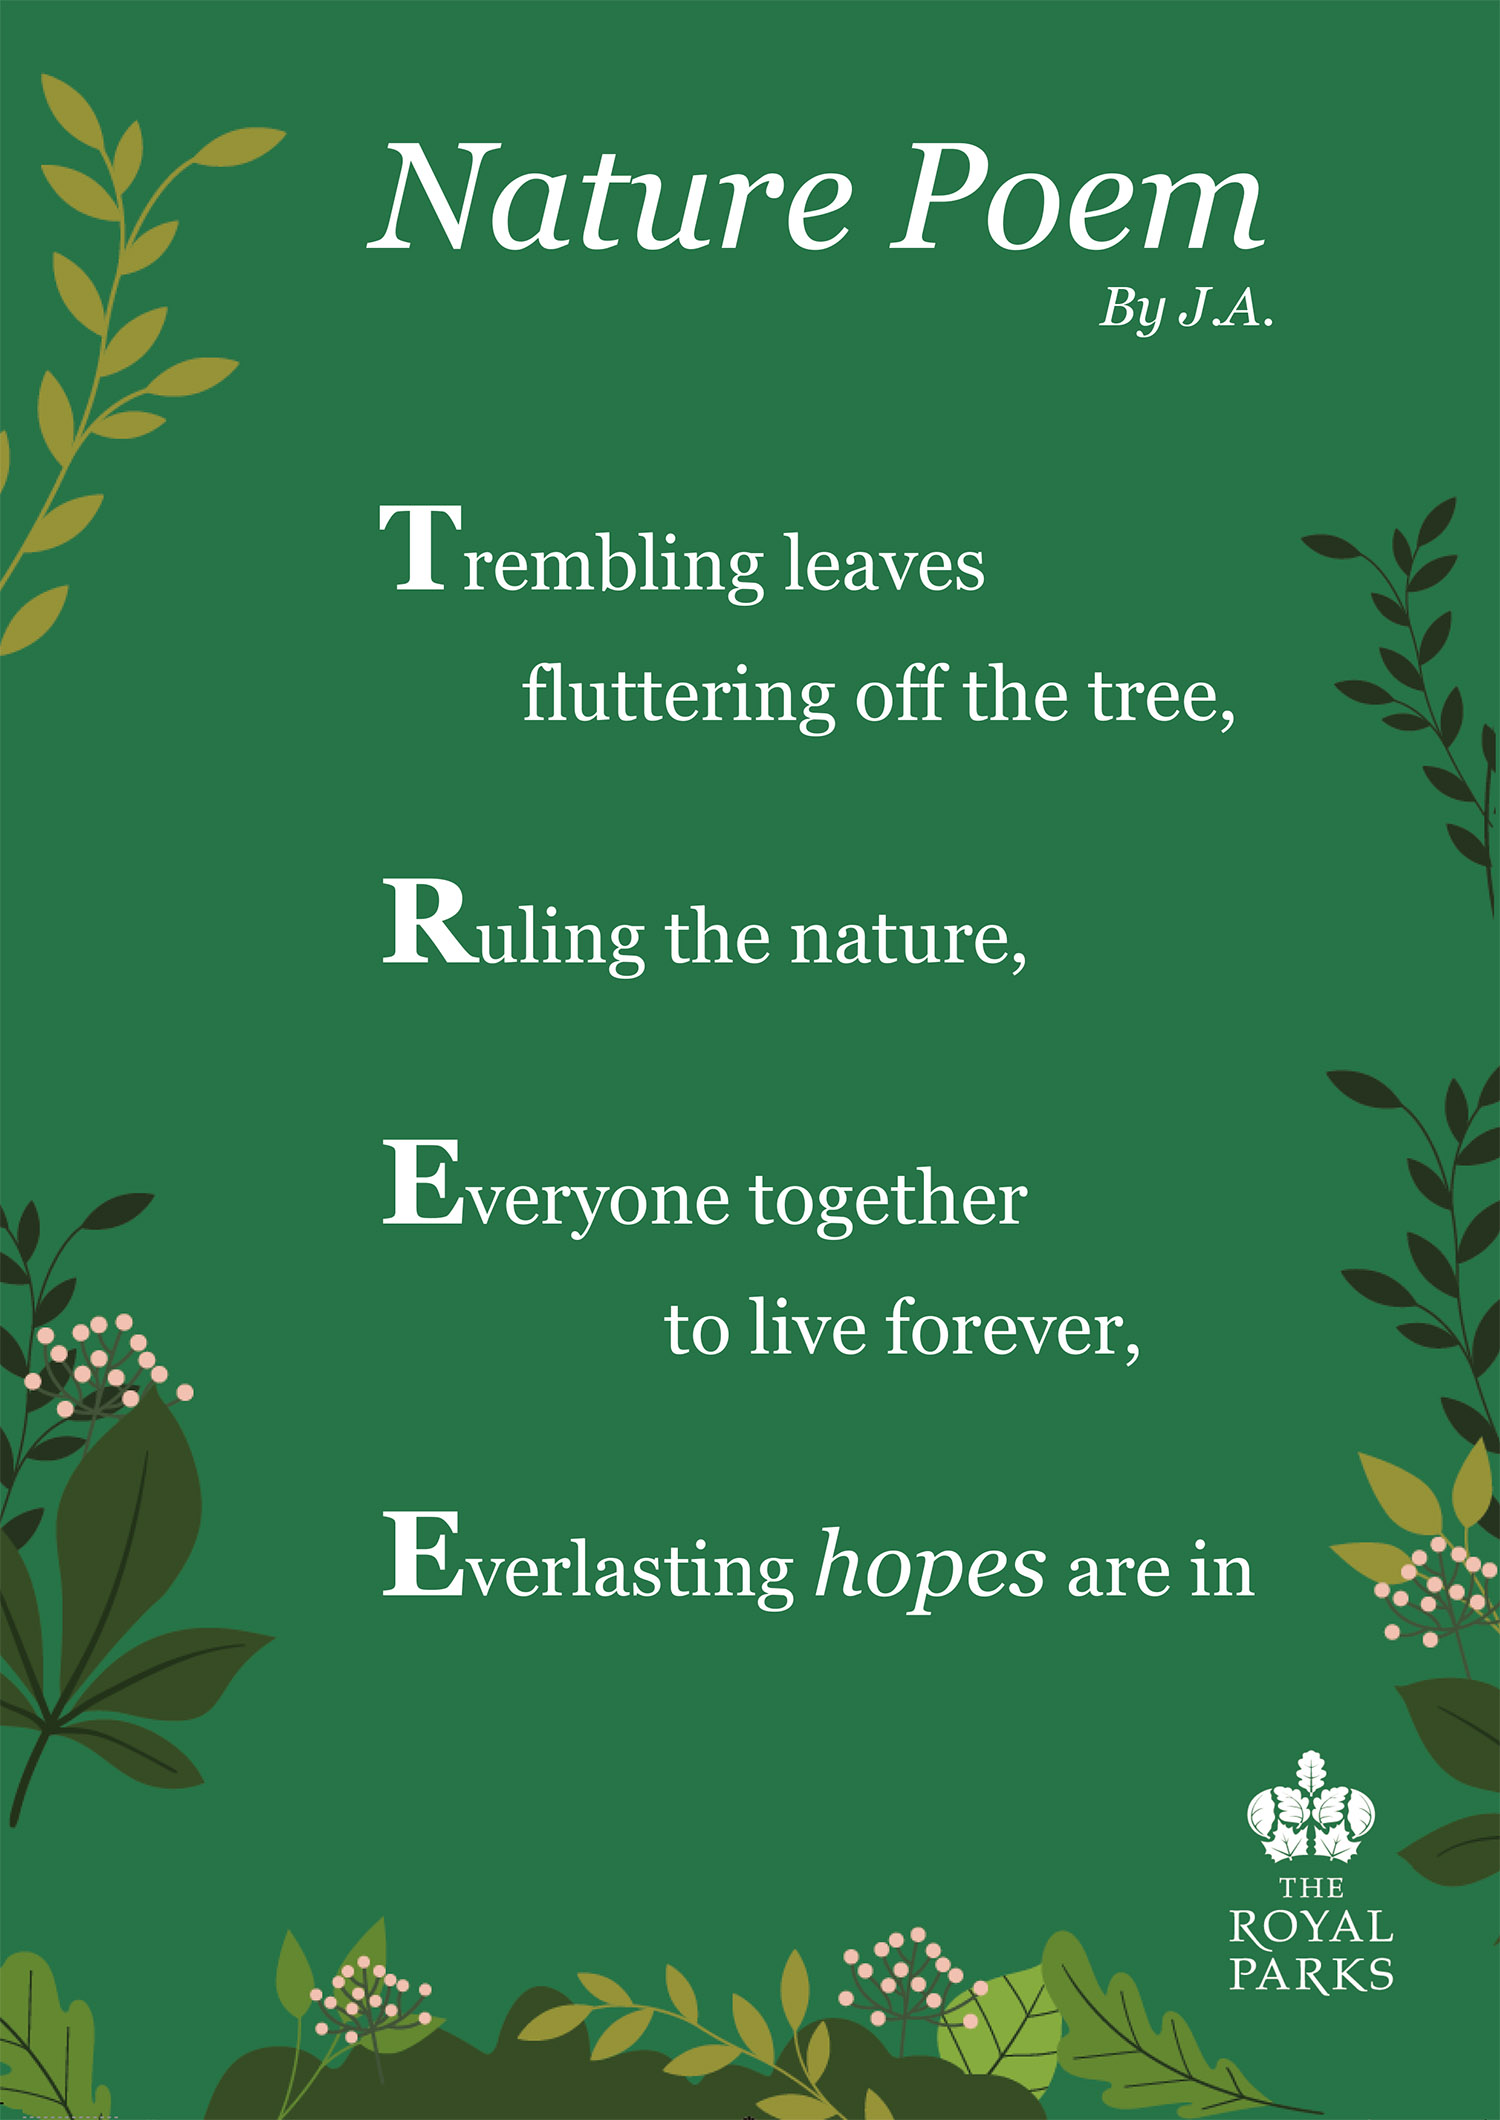 Nature Poem by J.A. (Our Lady Immaculate Catholic Primary School)